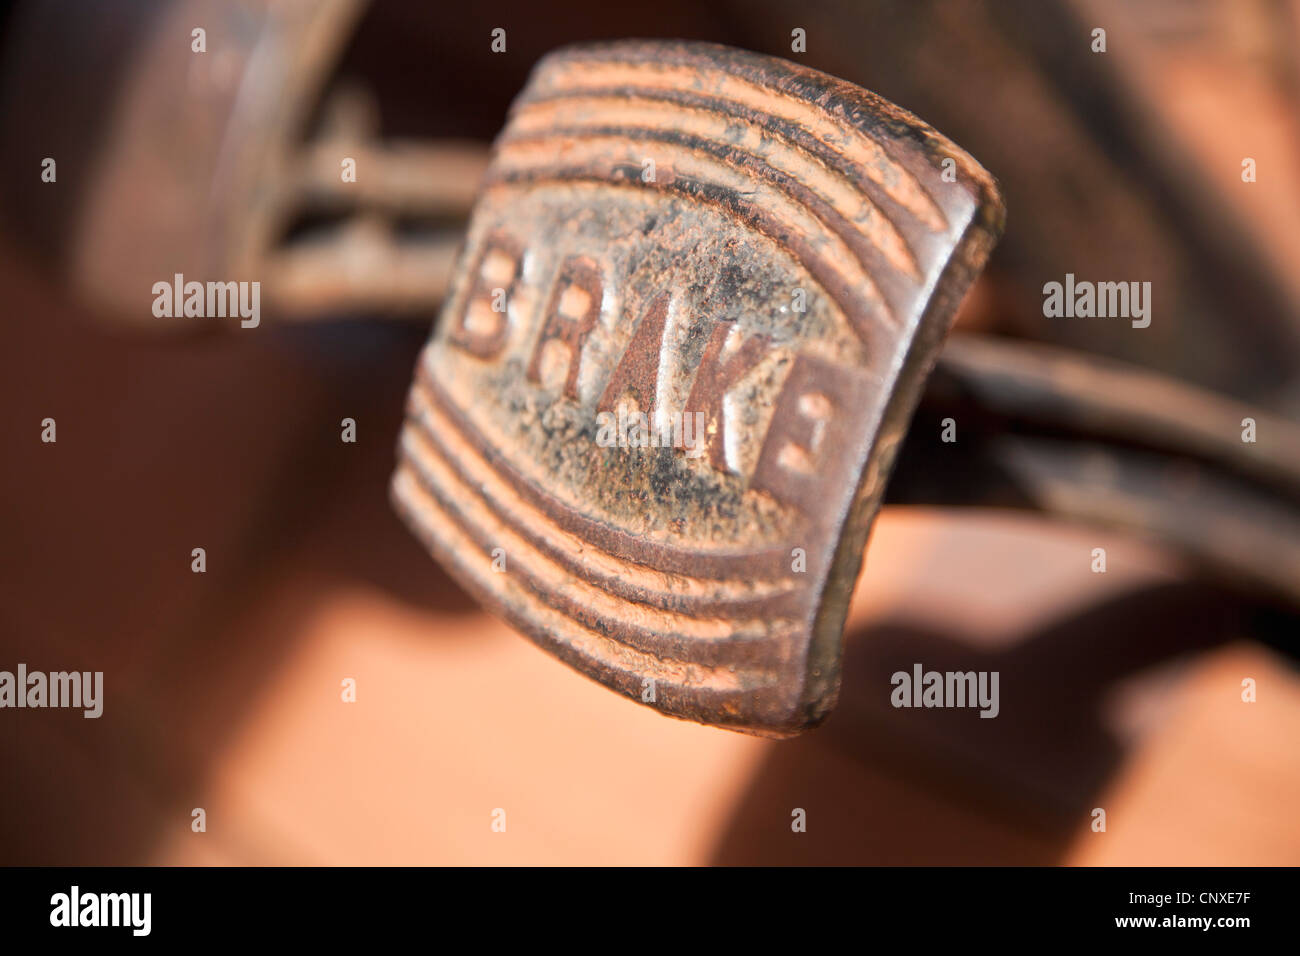 A worn, rusty pedal with BRAKE written on it in a land vehicle, close-up - Stock Image